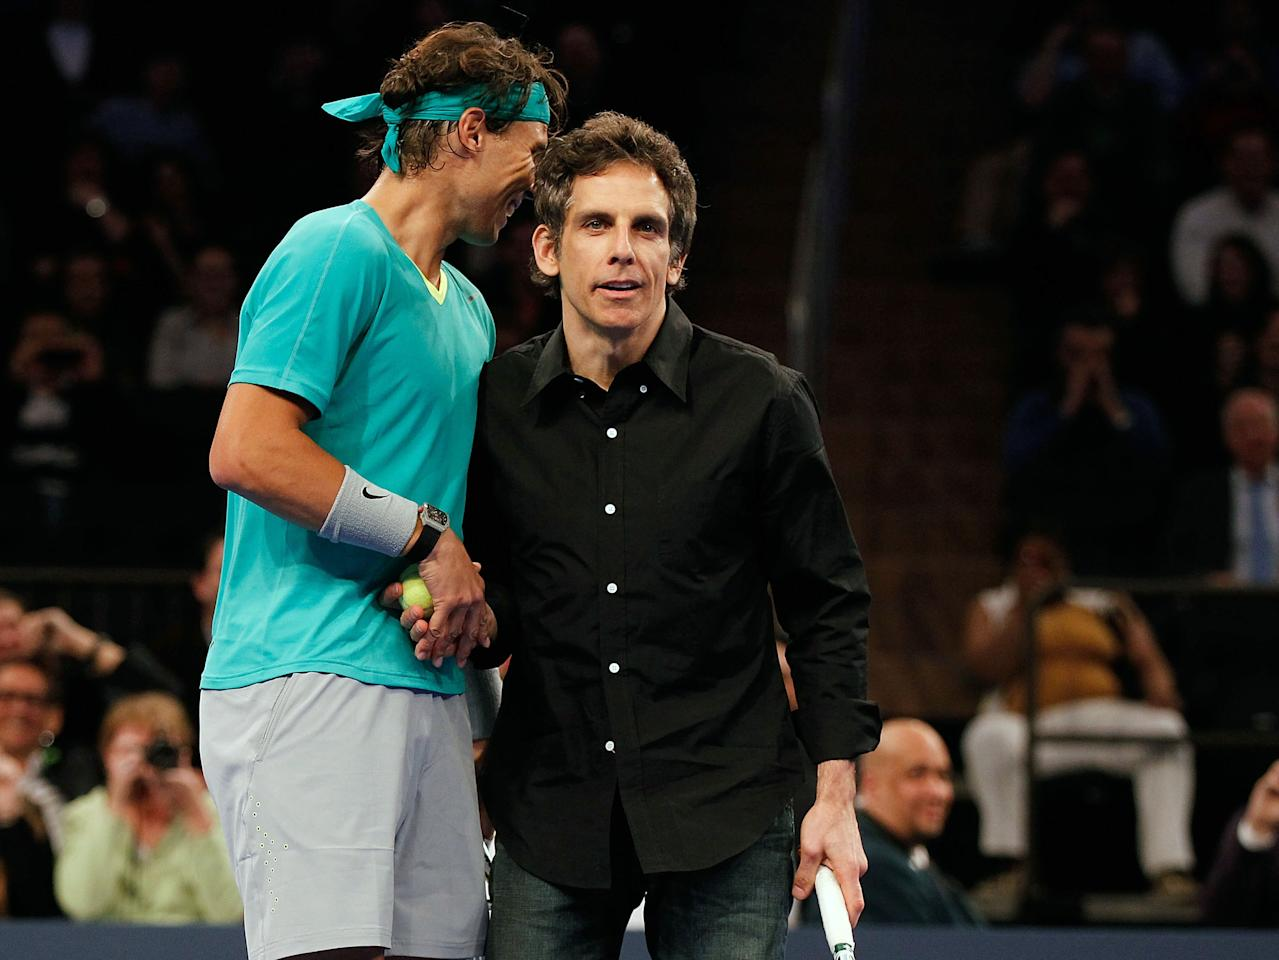 NEW YORK, NY - MARCH 04:  Actor Ben Stiller comes out to play with Rafael Nadal of Spain in the second set against Juan del Potro of Argentina during the BNP Paribas Showdown at Madison Square Garden on March 4, 2013 in New York City.  (Photo by Mike Stobe/Getty Images for StarGames)